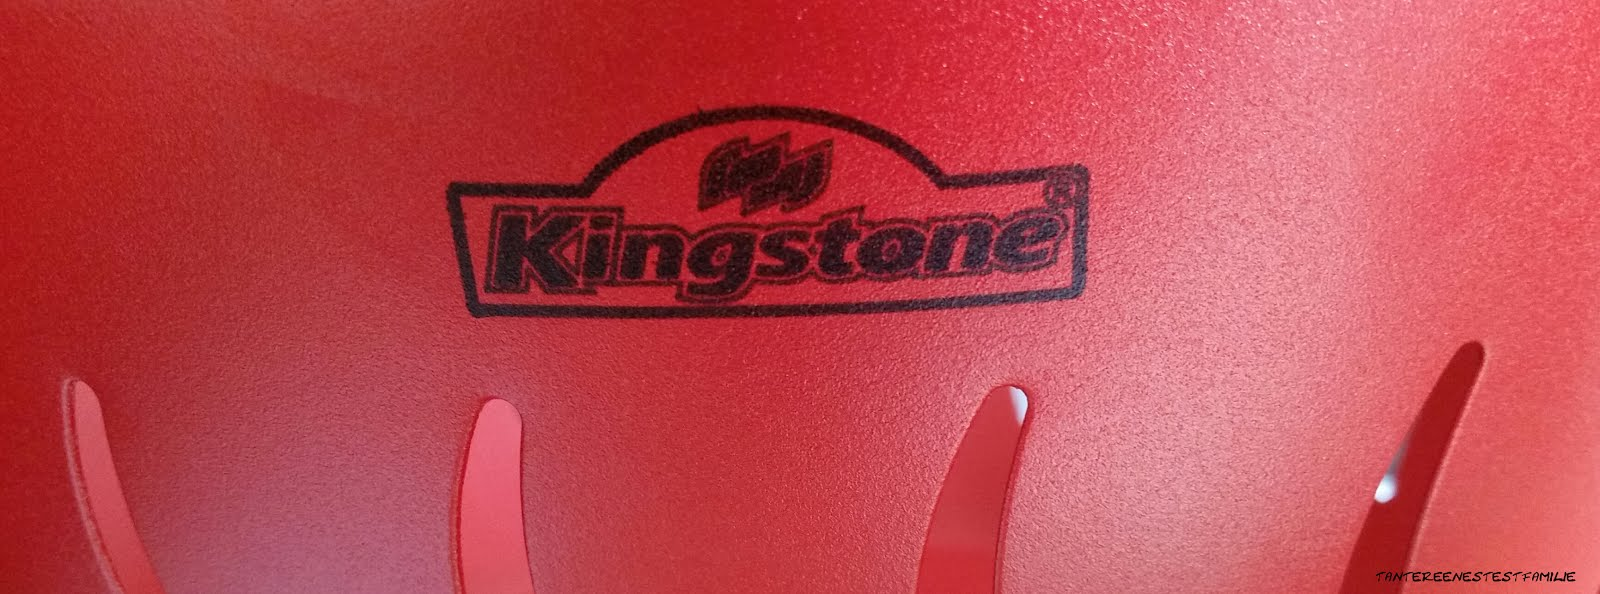 Tischgrill Kingstone Kingstone Easy 32 Grill Tante Reenes Testfamilie